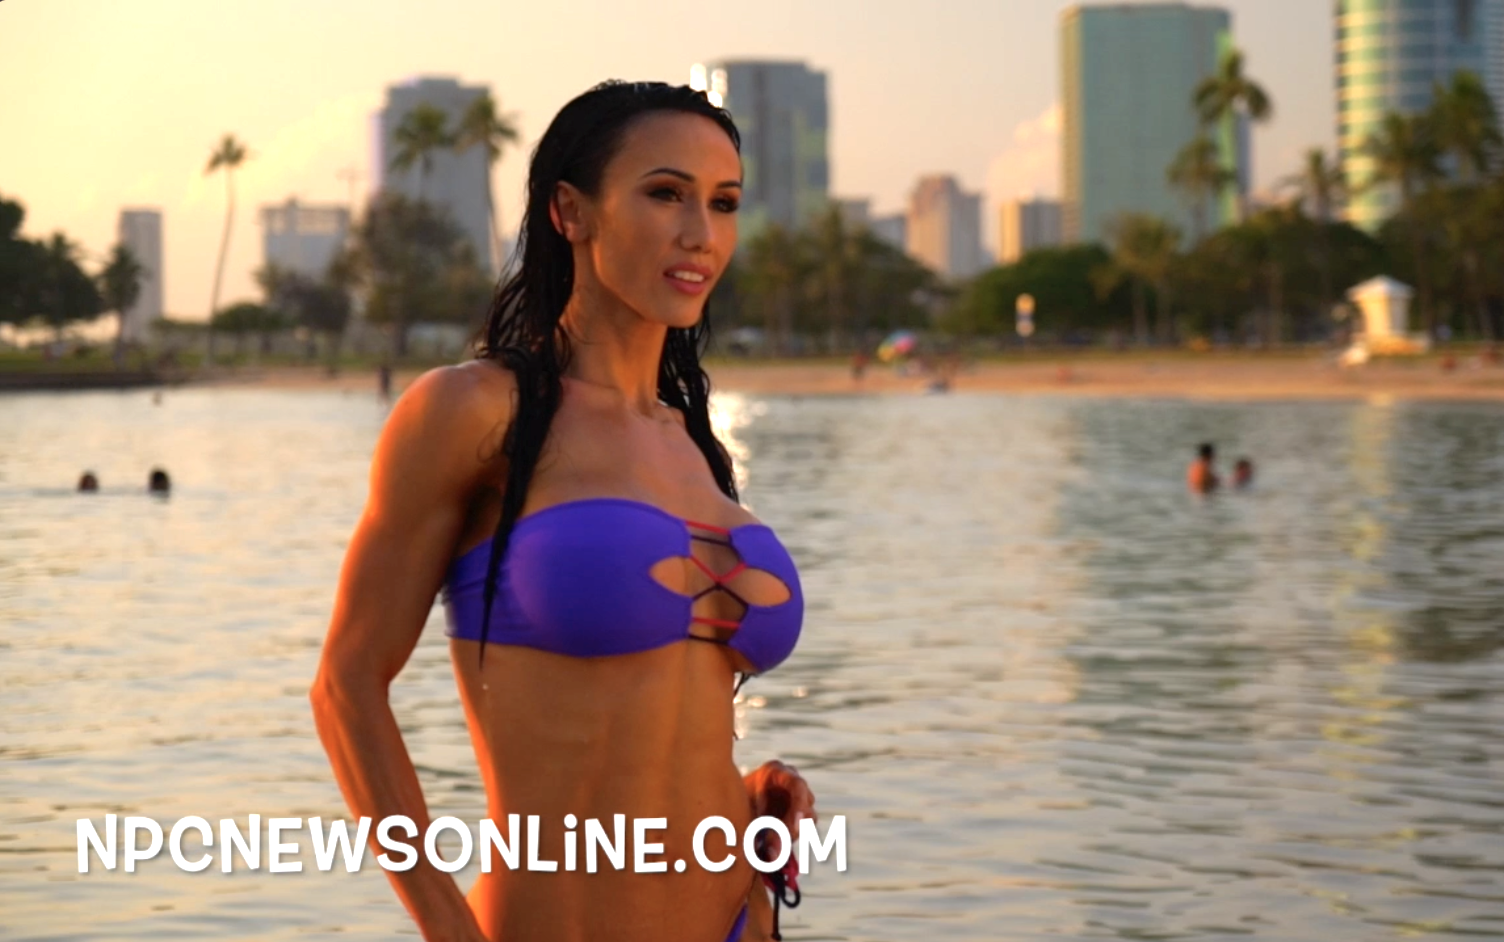 J.M.Manion Hawaii Shoot: IFBB Pro Bikini Competitor Francesca Lauren Video